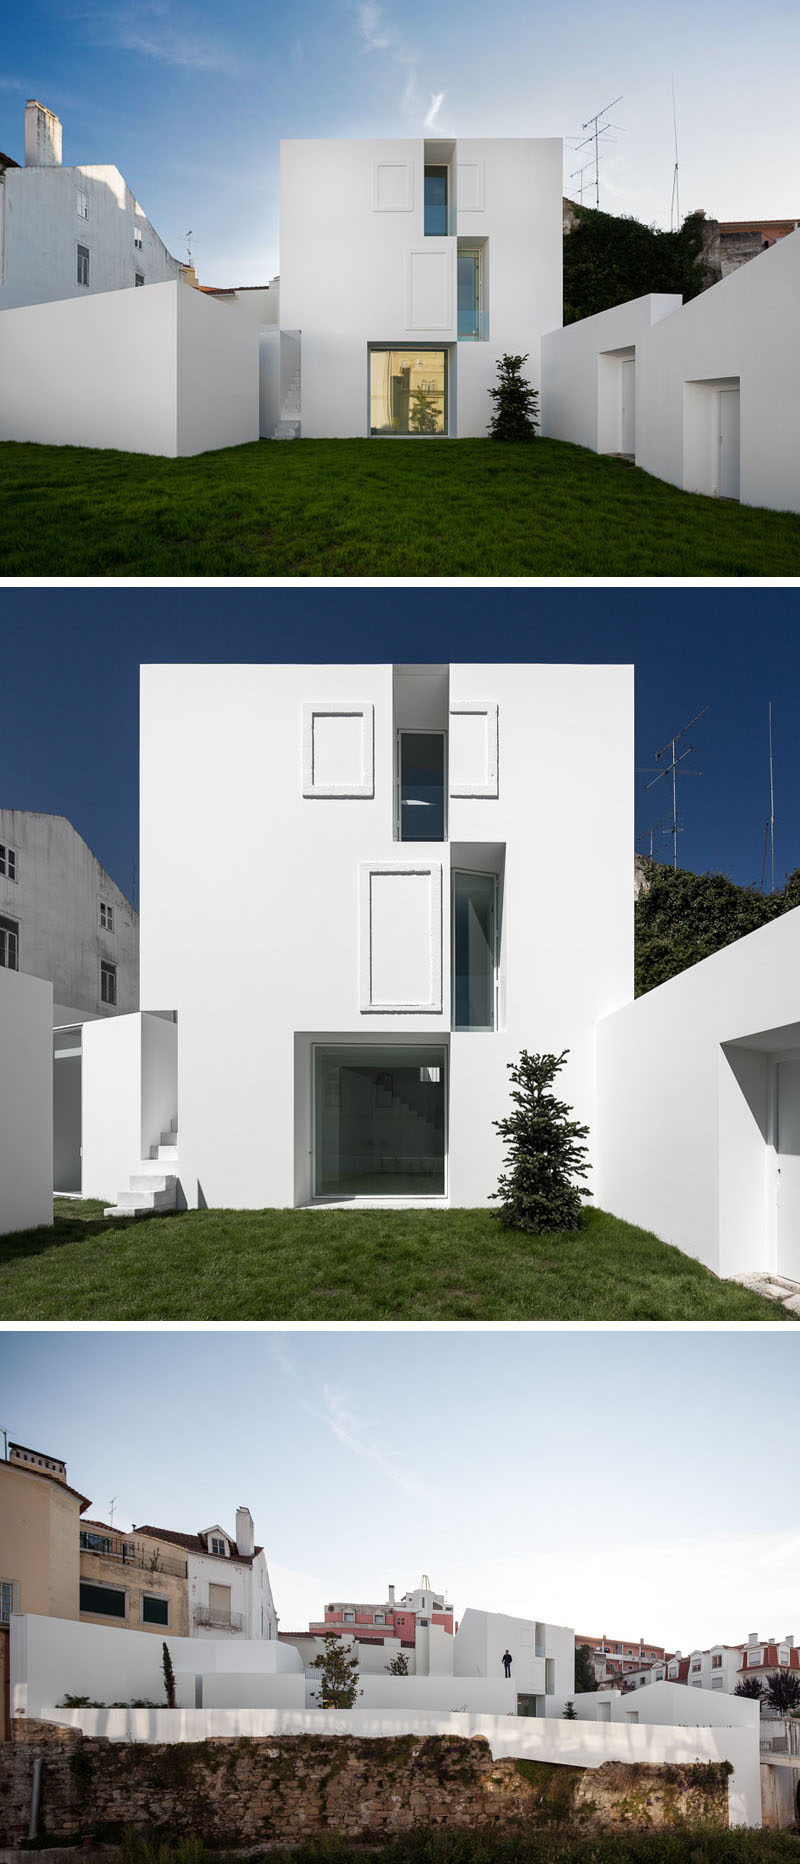 The Bright White Exterior Of This Angular Home Gives It A Clean Look And  Sets It Apart From The Other Houses Around It.